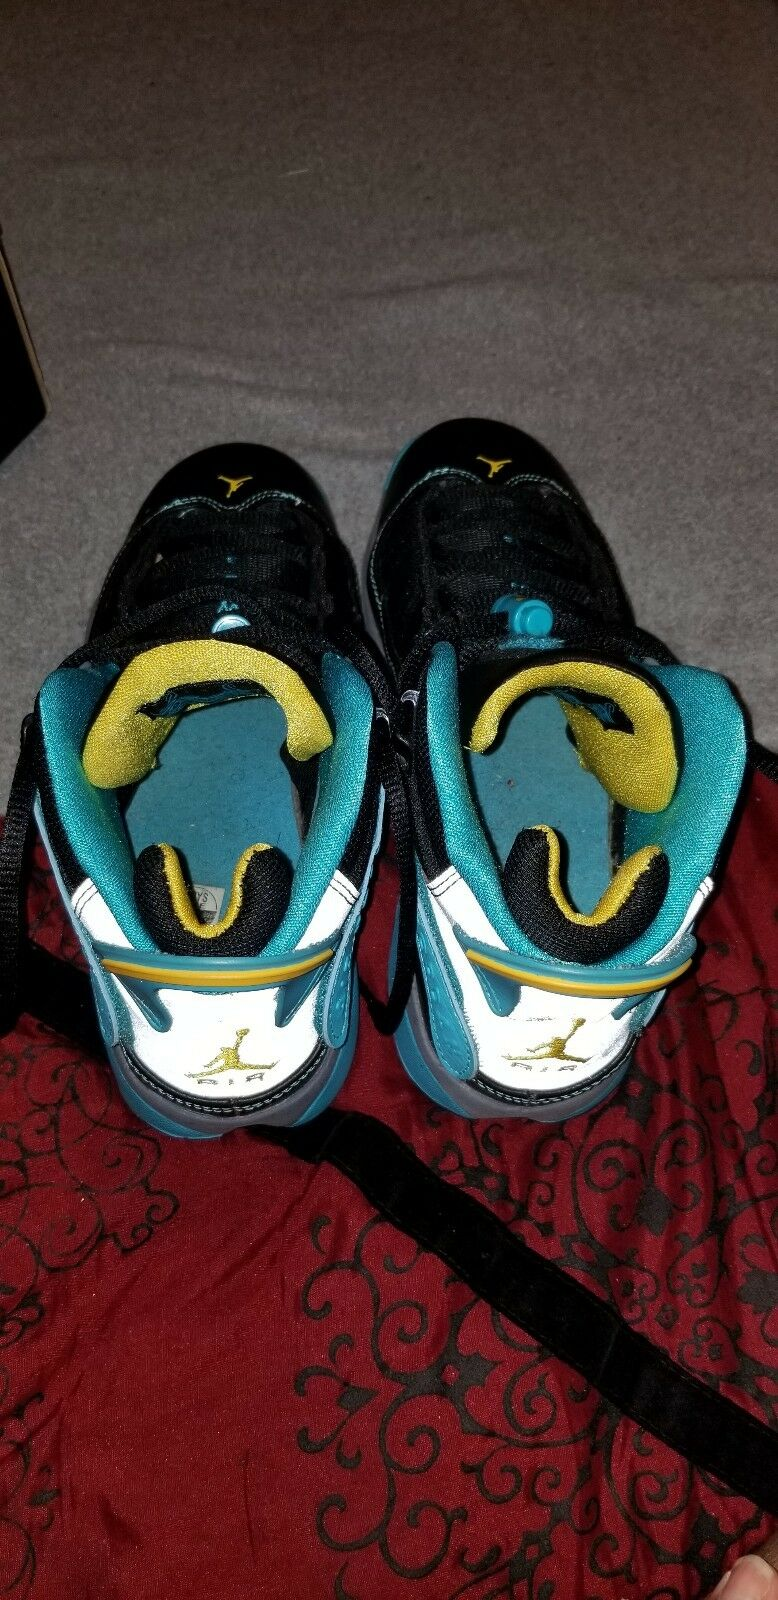 Nike air jordan 6 rings, yellow and turquoise accent with reflector back.